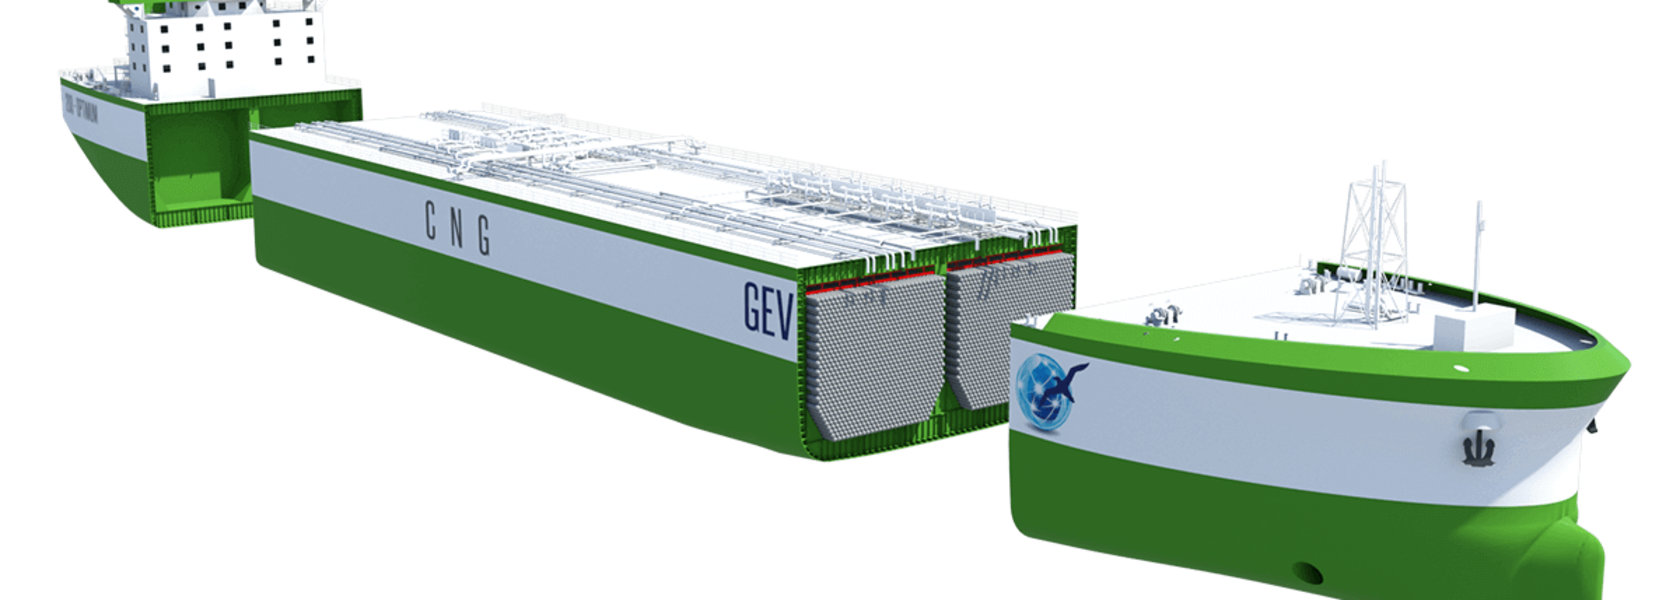 Land in sight for GEV's CNG Optimum ship